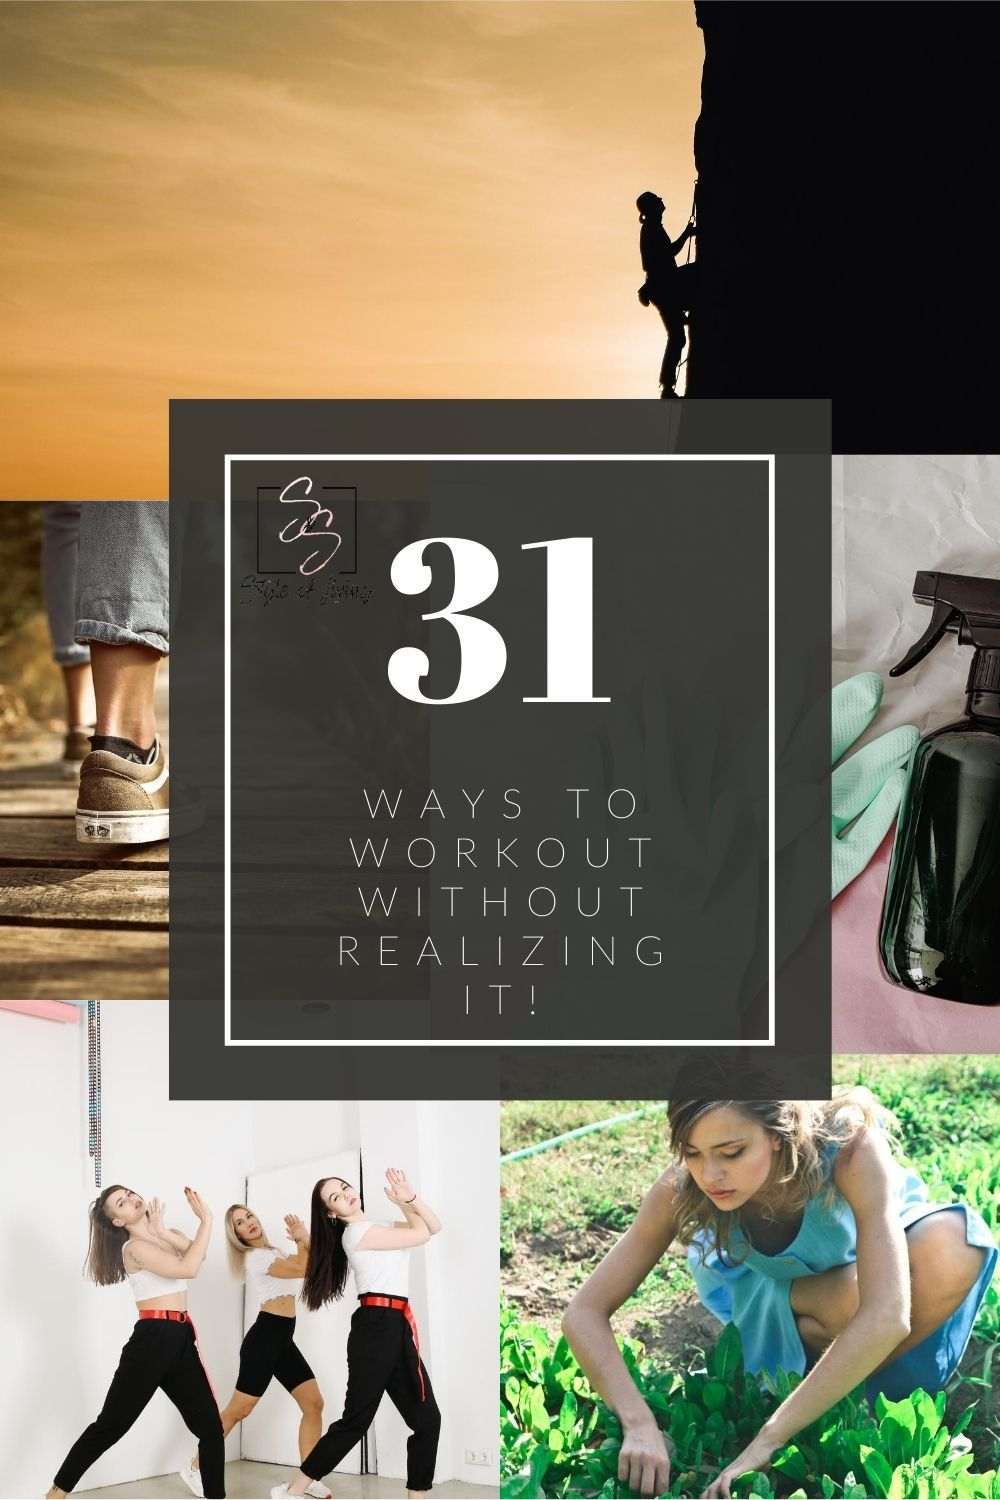 Are you feeling unmotivated and have zero desire to workout? Did you know there are so many ways to get your fitness in WITHOUT doing traditional exercise? FIND OUT HOW! #stayingactive #funfitness #easyexercise #healthylifestyle #workoutathome #athomegym